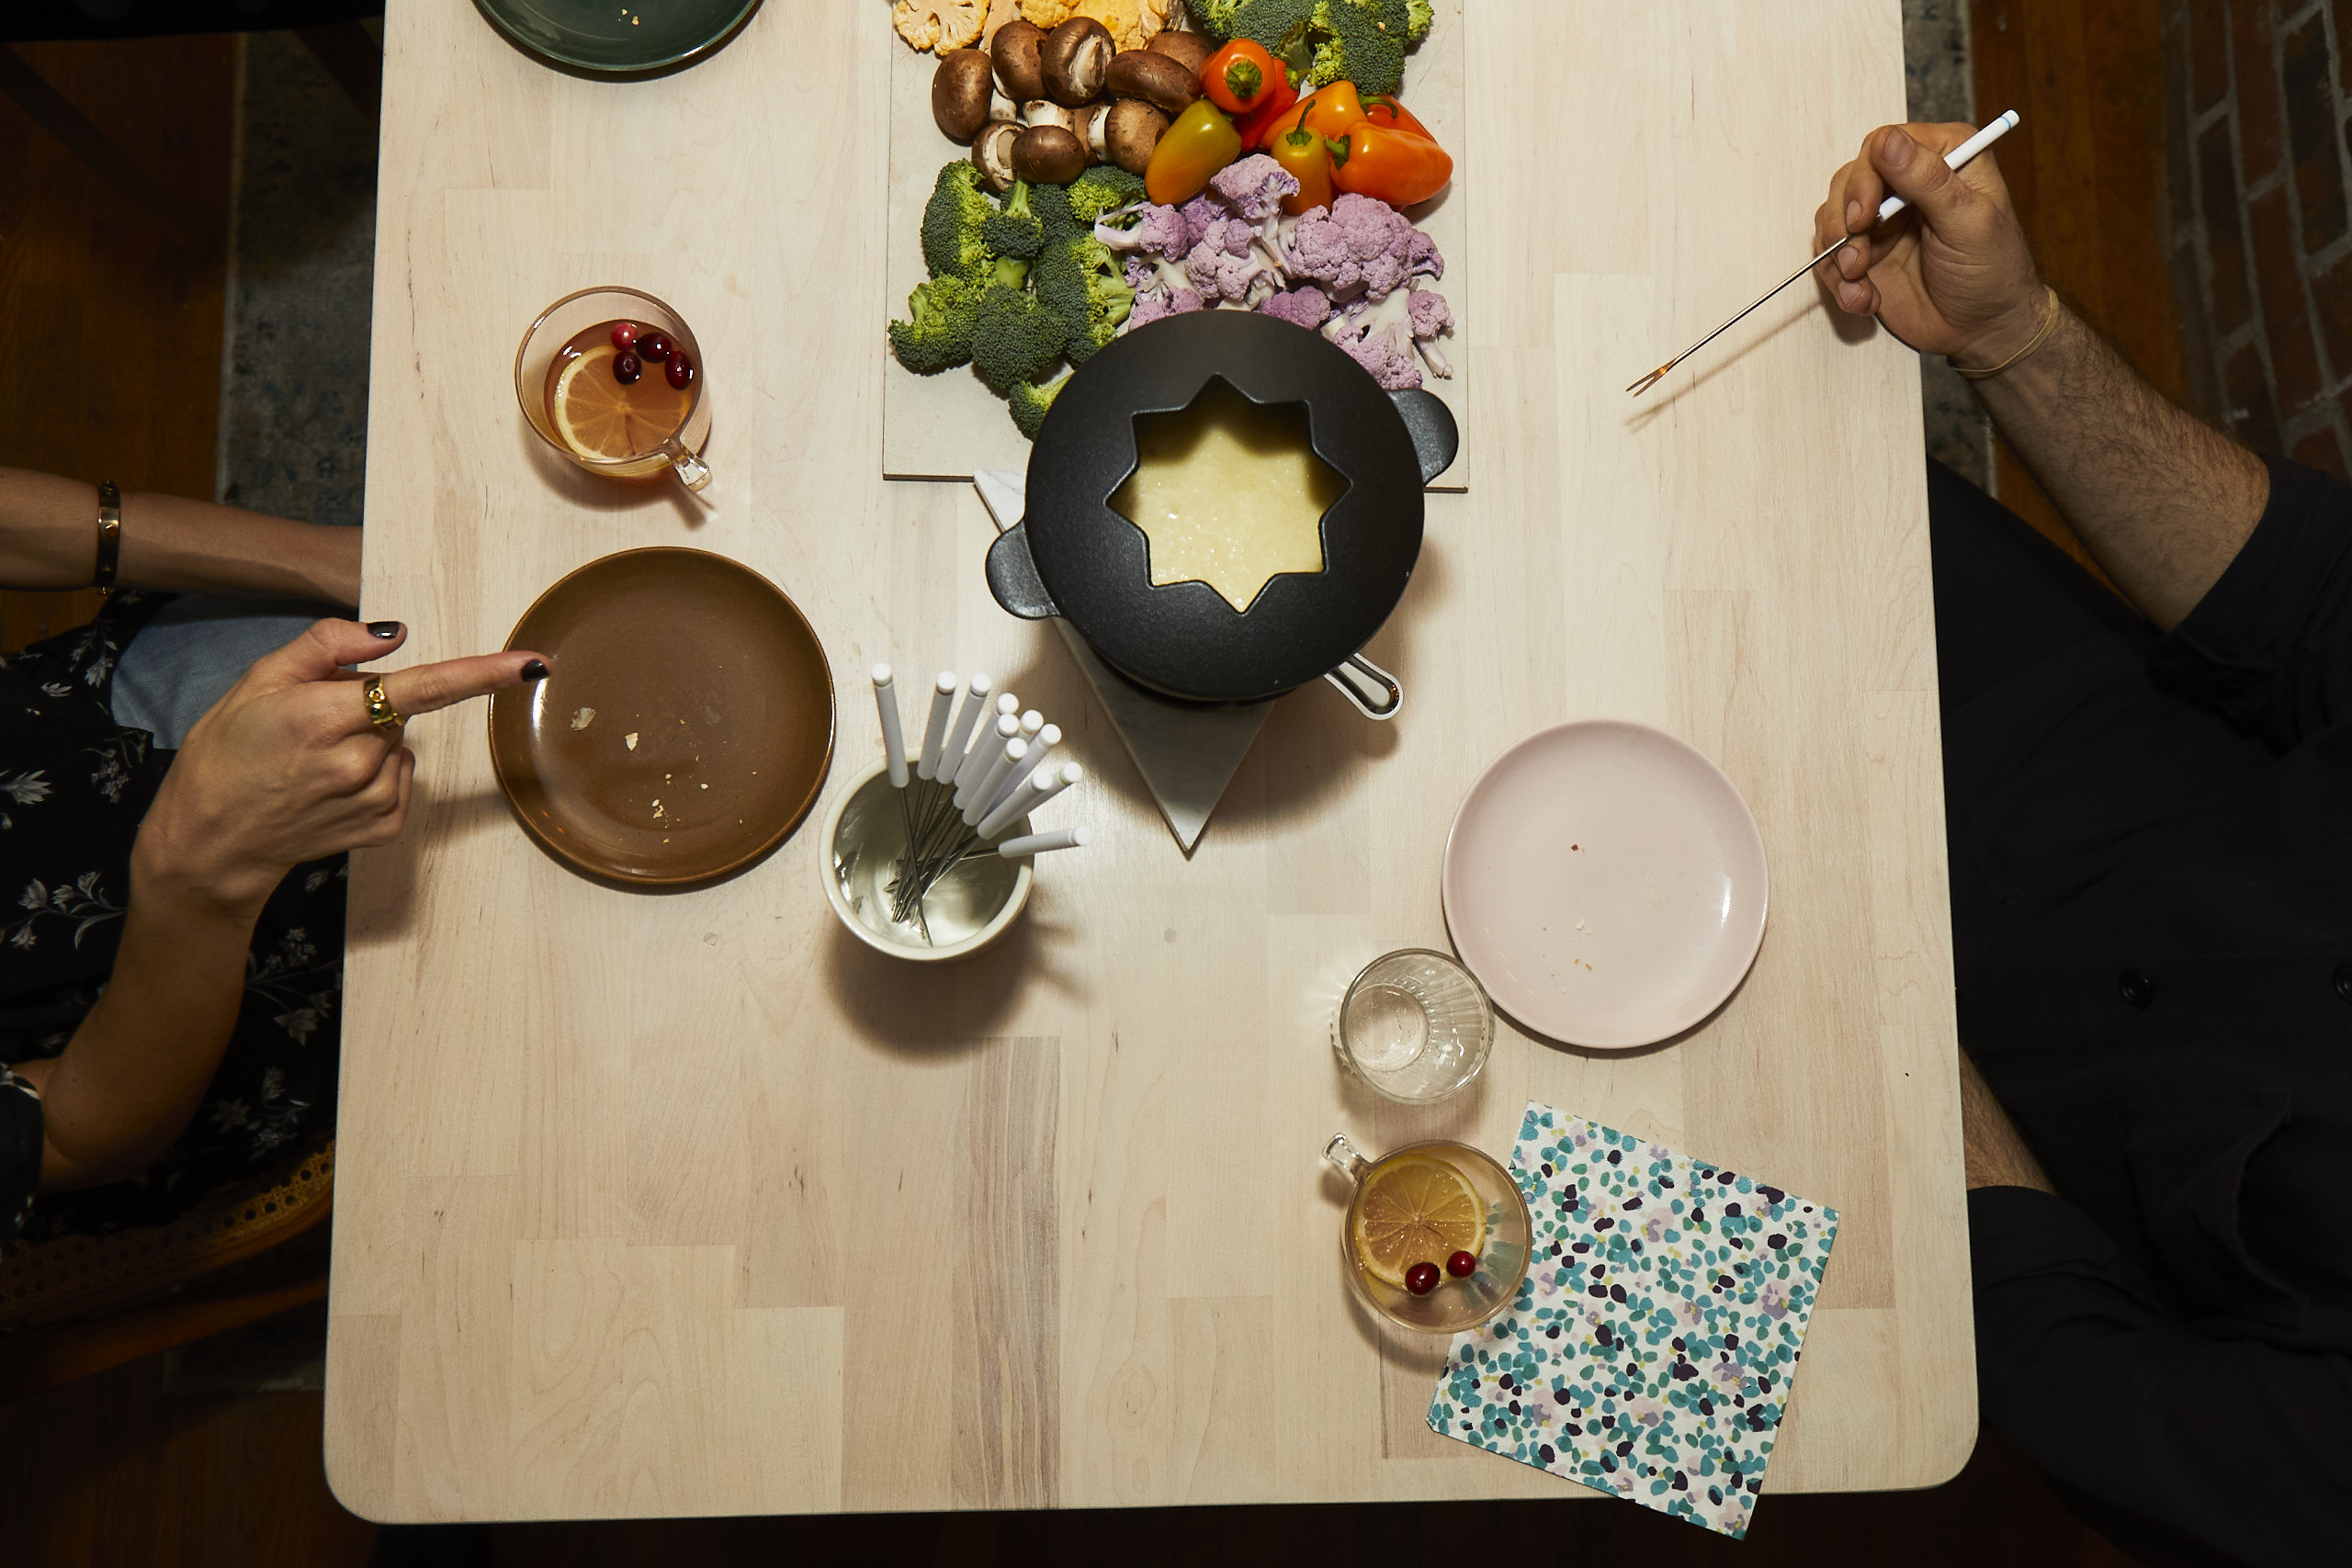 Overhead view of a wooden table with colorful plates.